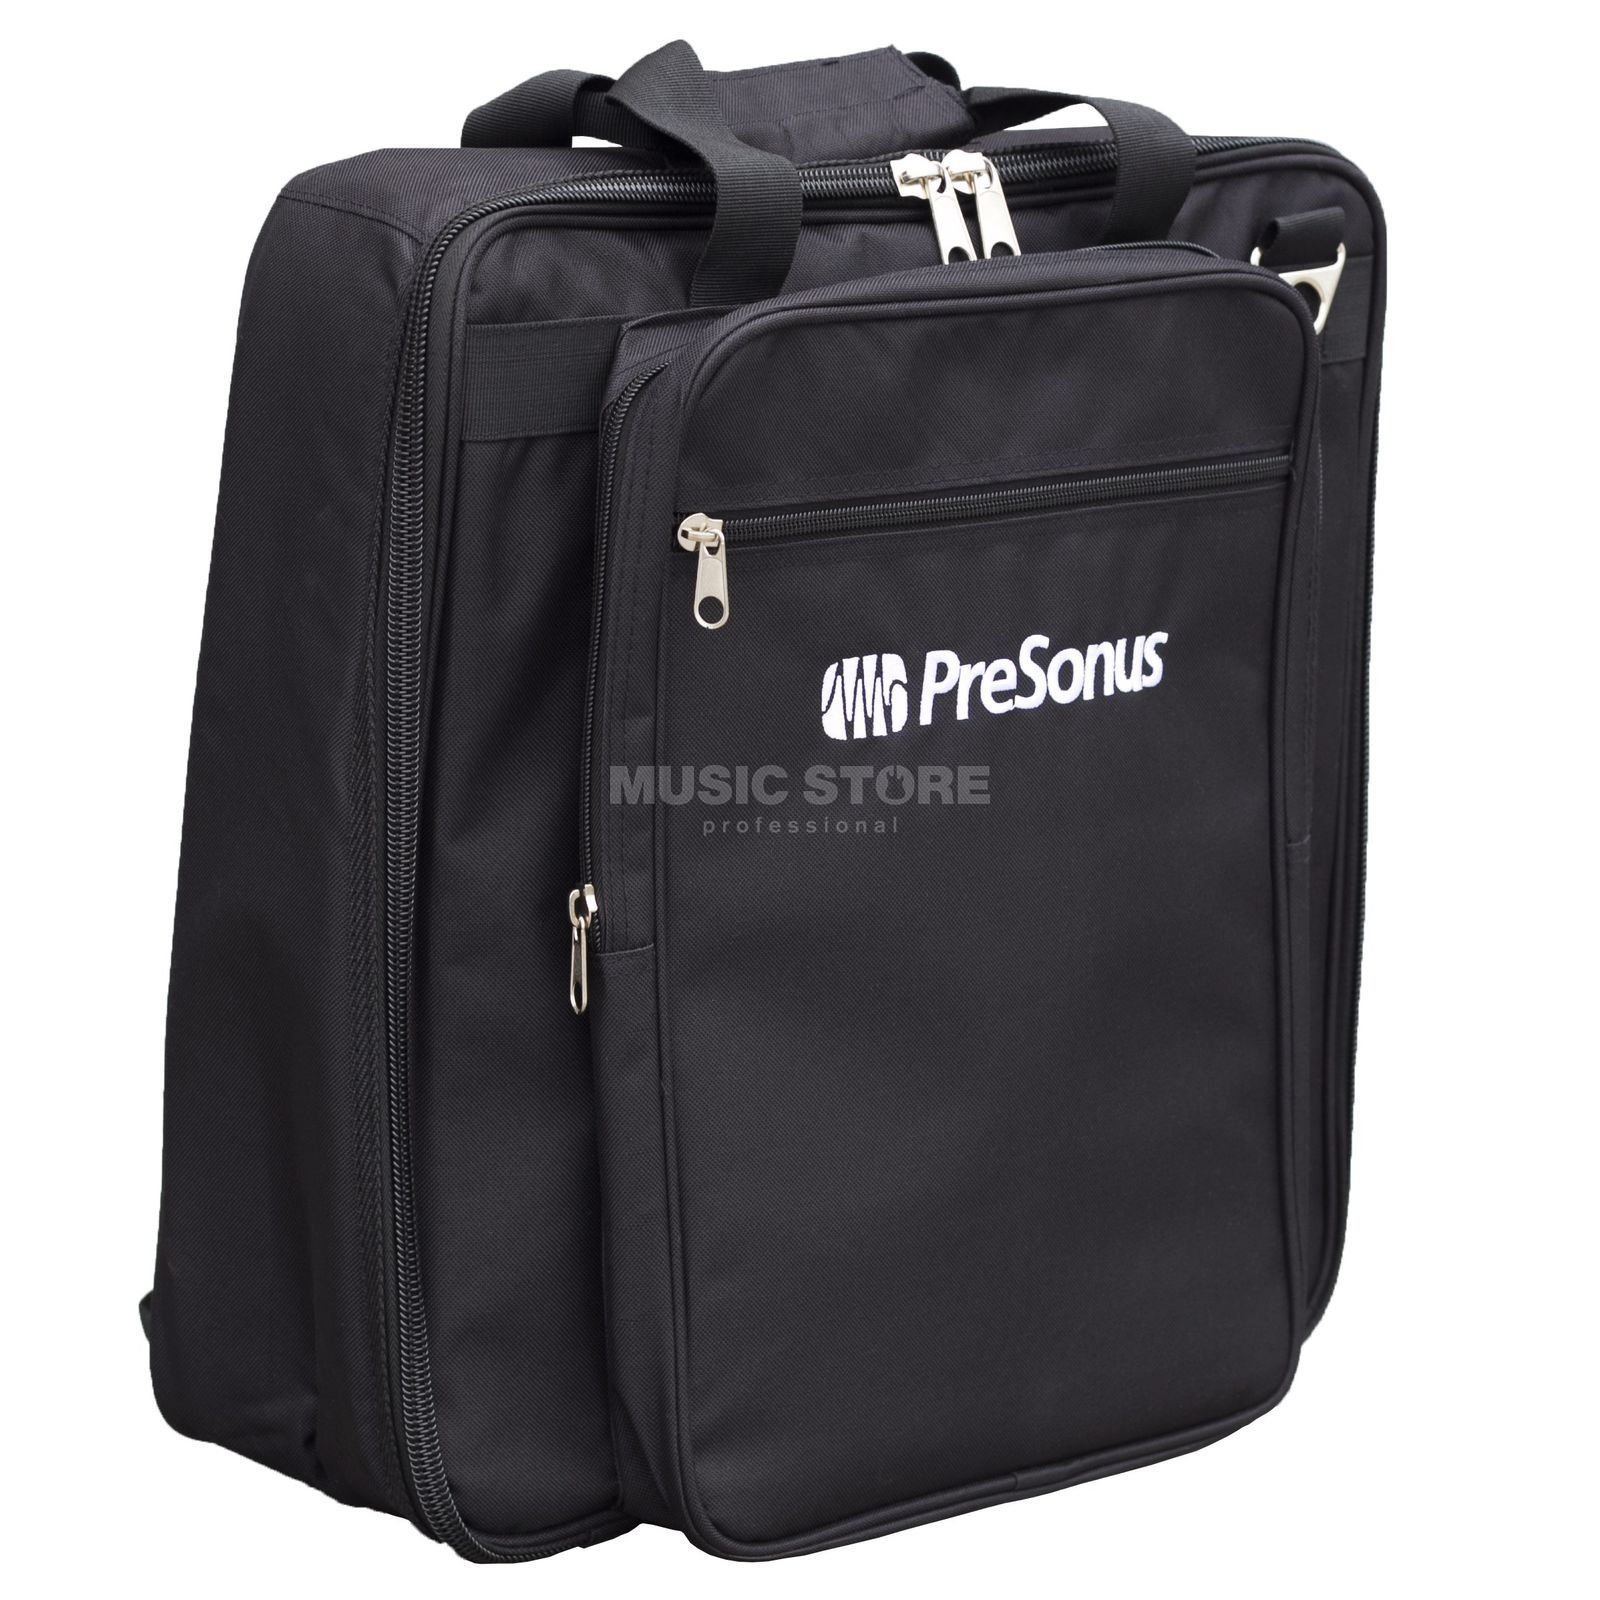 Presonus SL 1602 Bag/Back-Packk for das StudioLive 16.0.2 Product Image